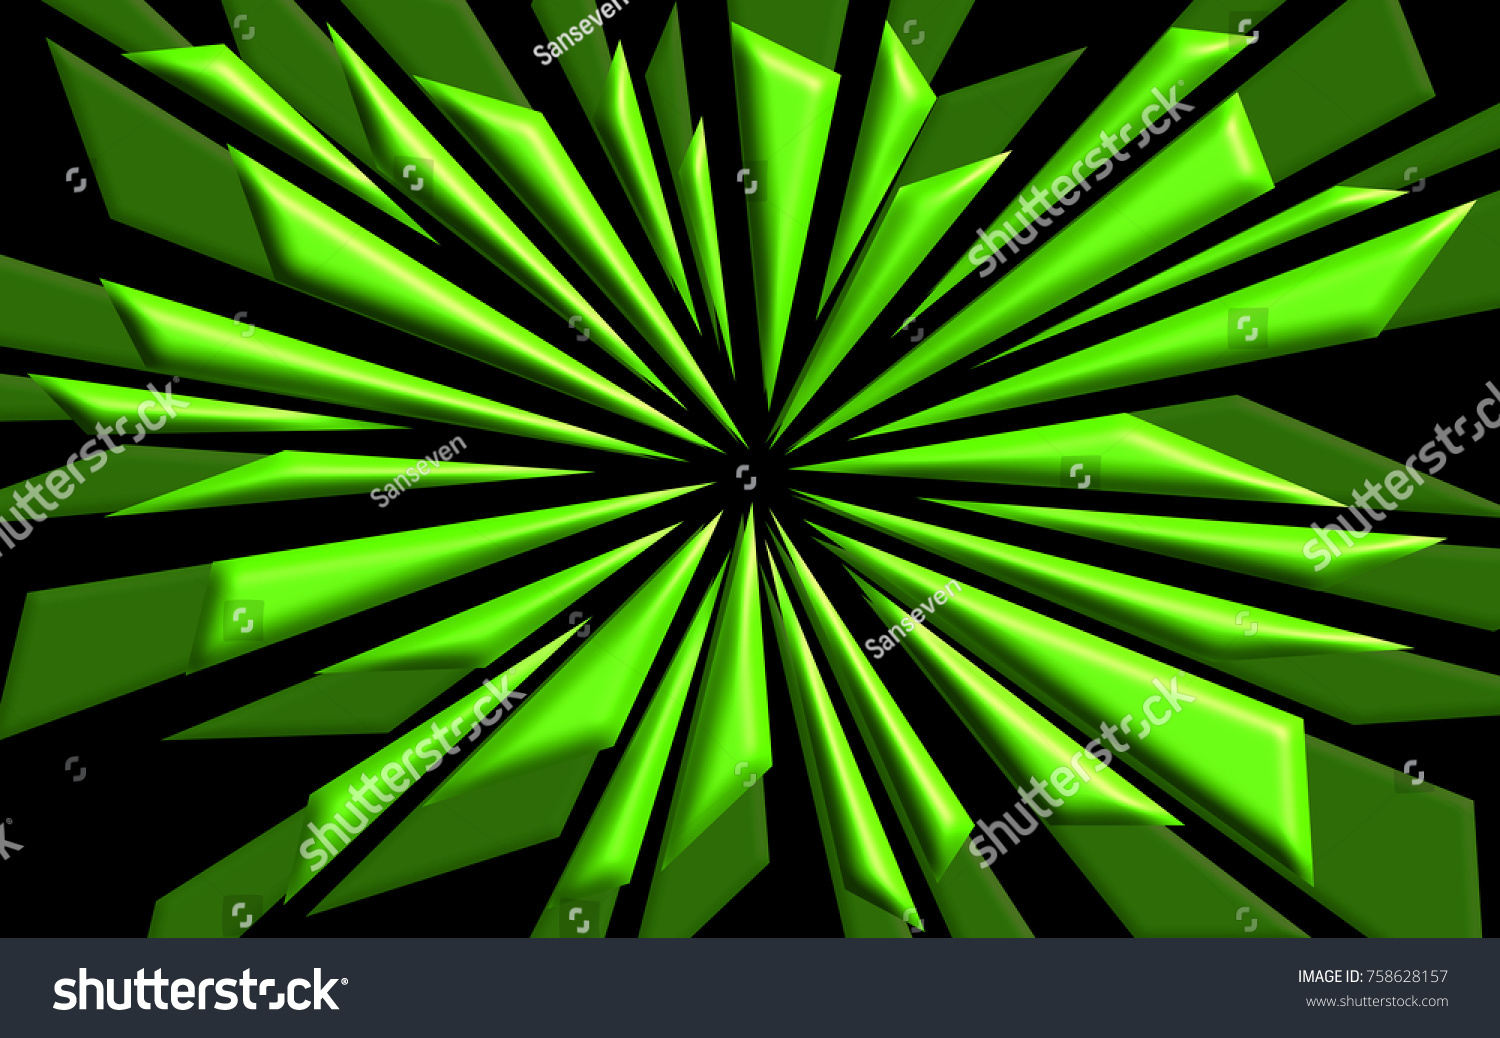 Shattered Neon Green Shapes Background